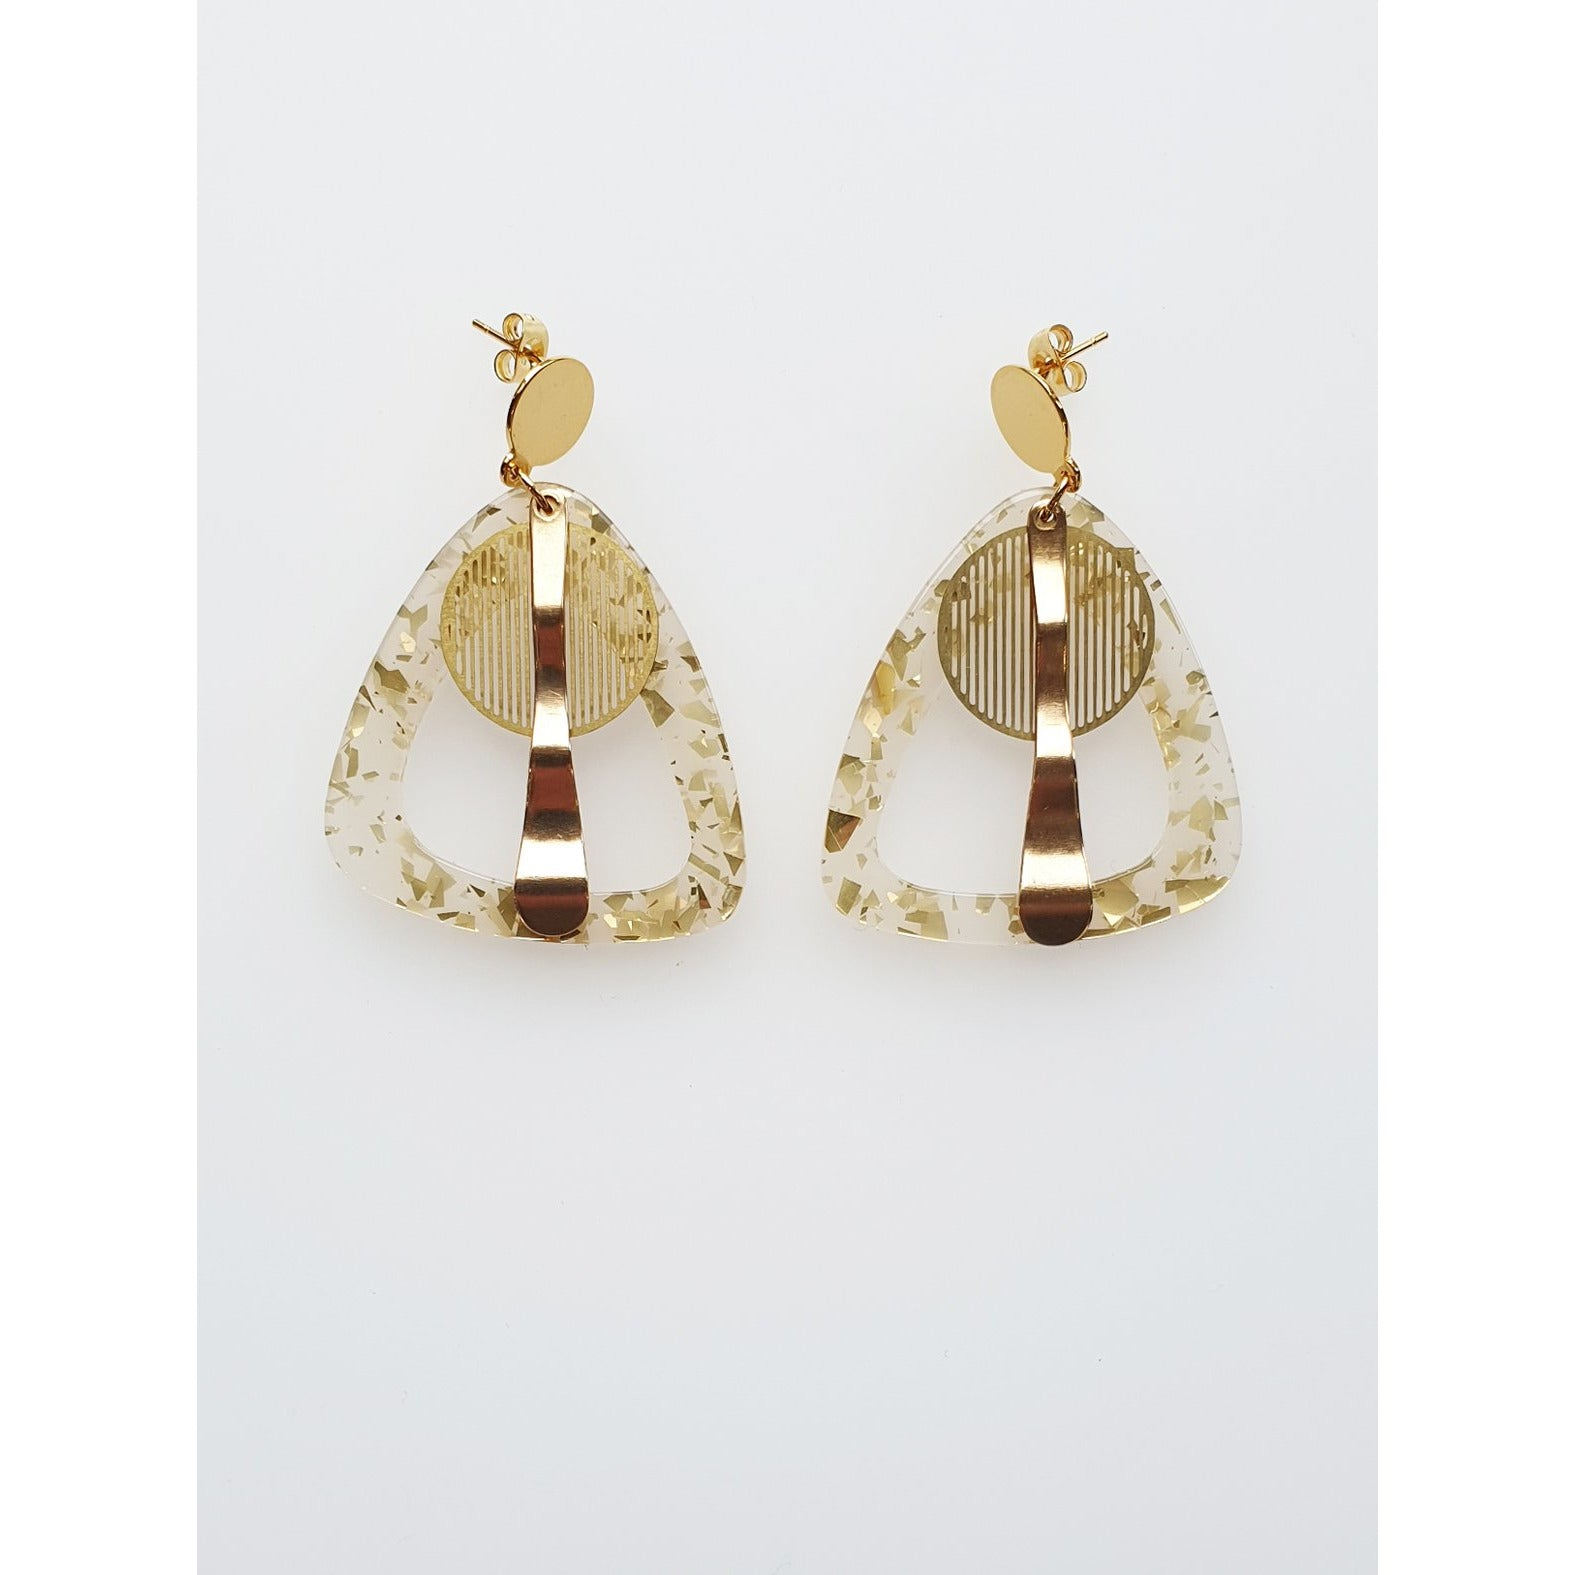 Middle Child Jewellery Atlas Earrings Gold